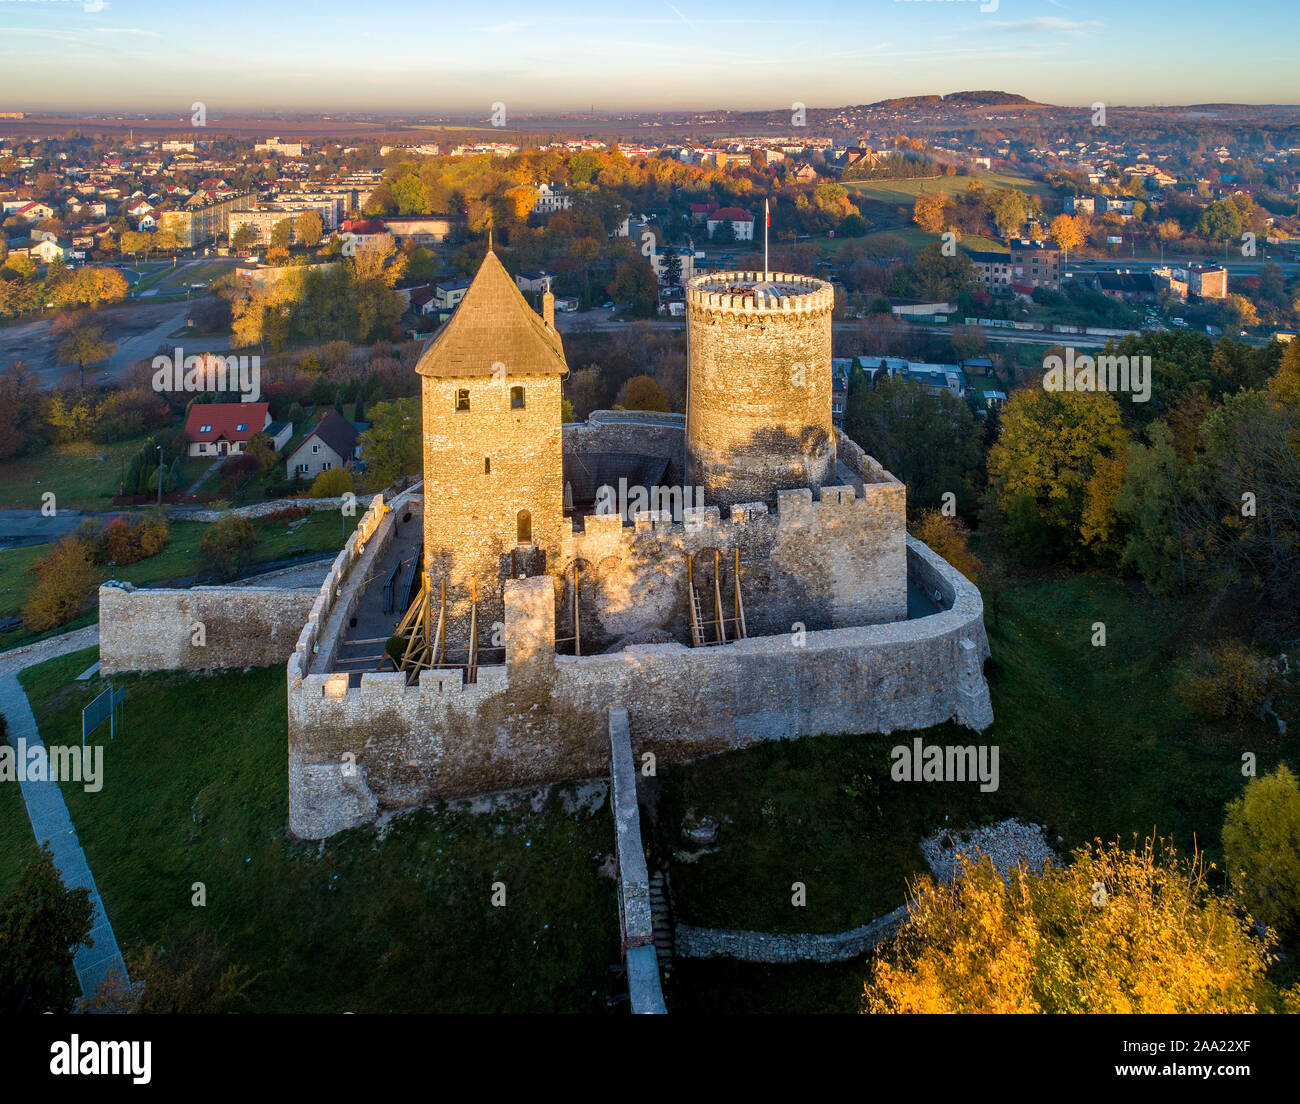 Medieval gothic castle in Bedzin, Upper Silesia, Poland. Aerial view in fall in sunrise light Stock Photo